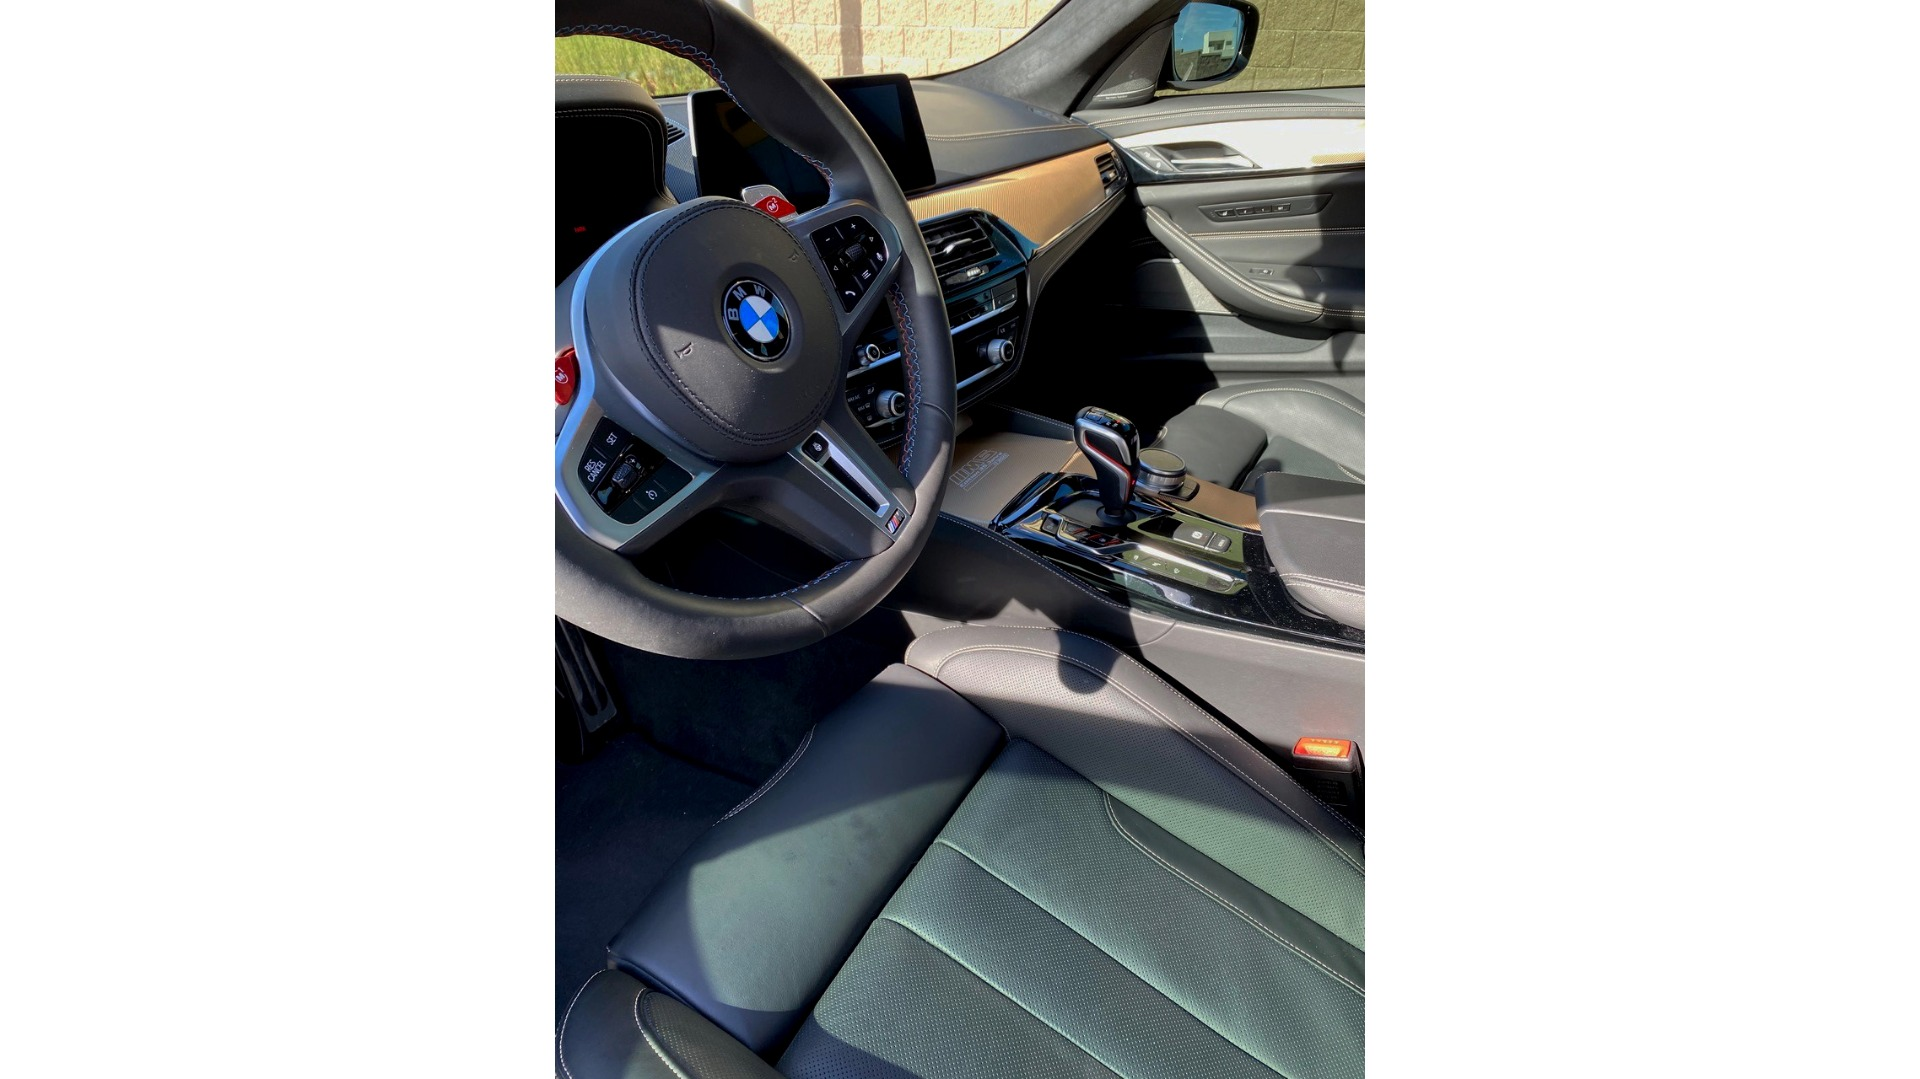 Used 2020 BMW M5 COMPETITION 35 JAHRE / EXECUTIVE PKG / M-DRIVER PKG for sale $128,500 at Formula Imports in Charlotte NC 28227 9